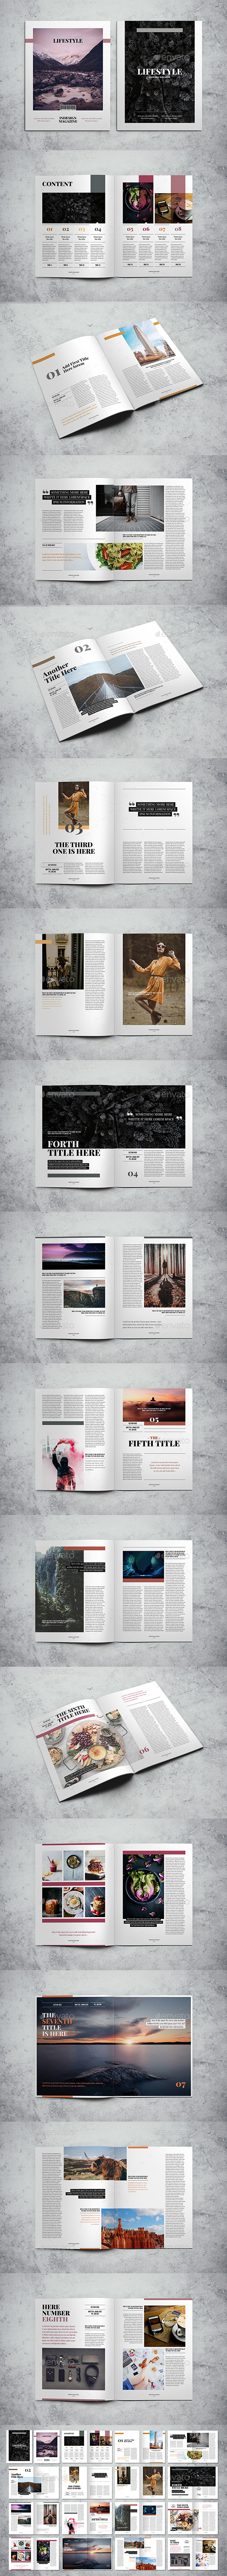 Lifestyle Magazine Indesign Template - Magazines Print Templates